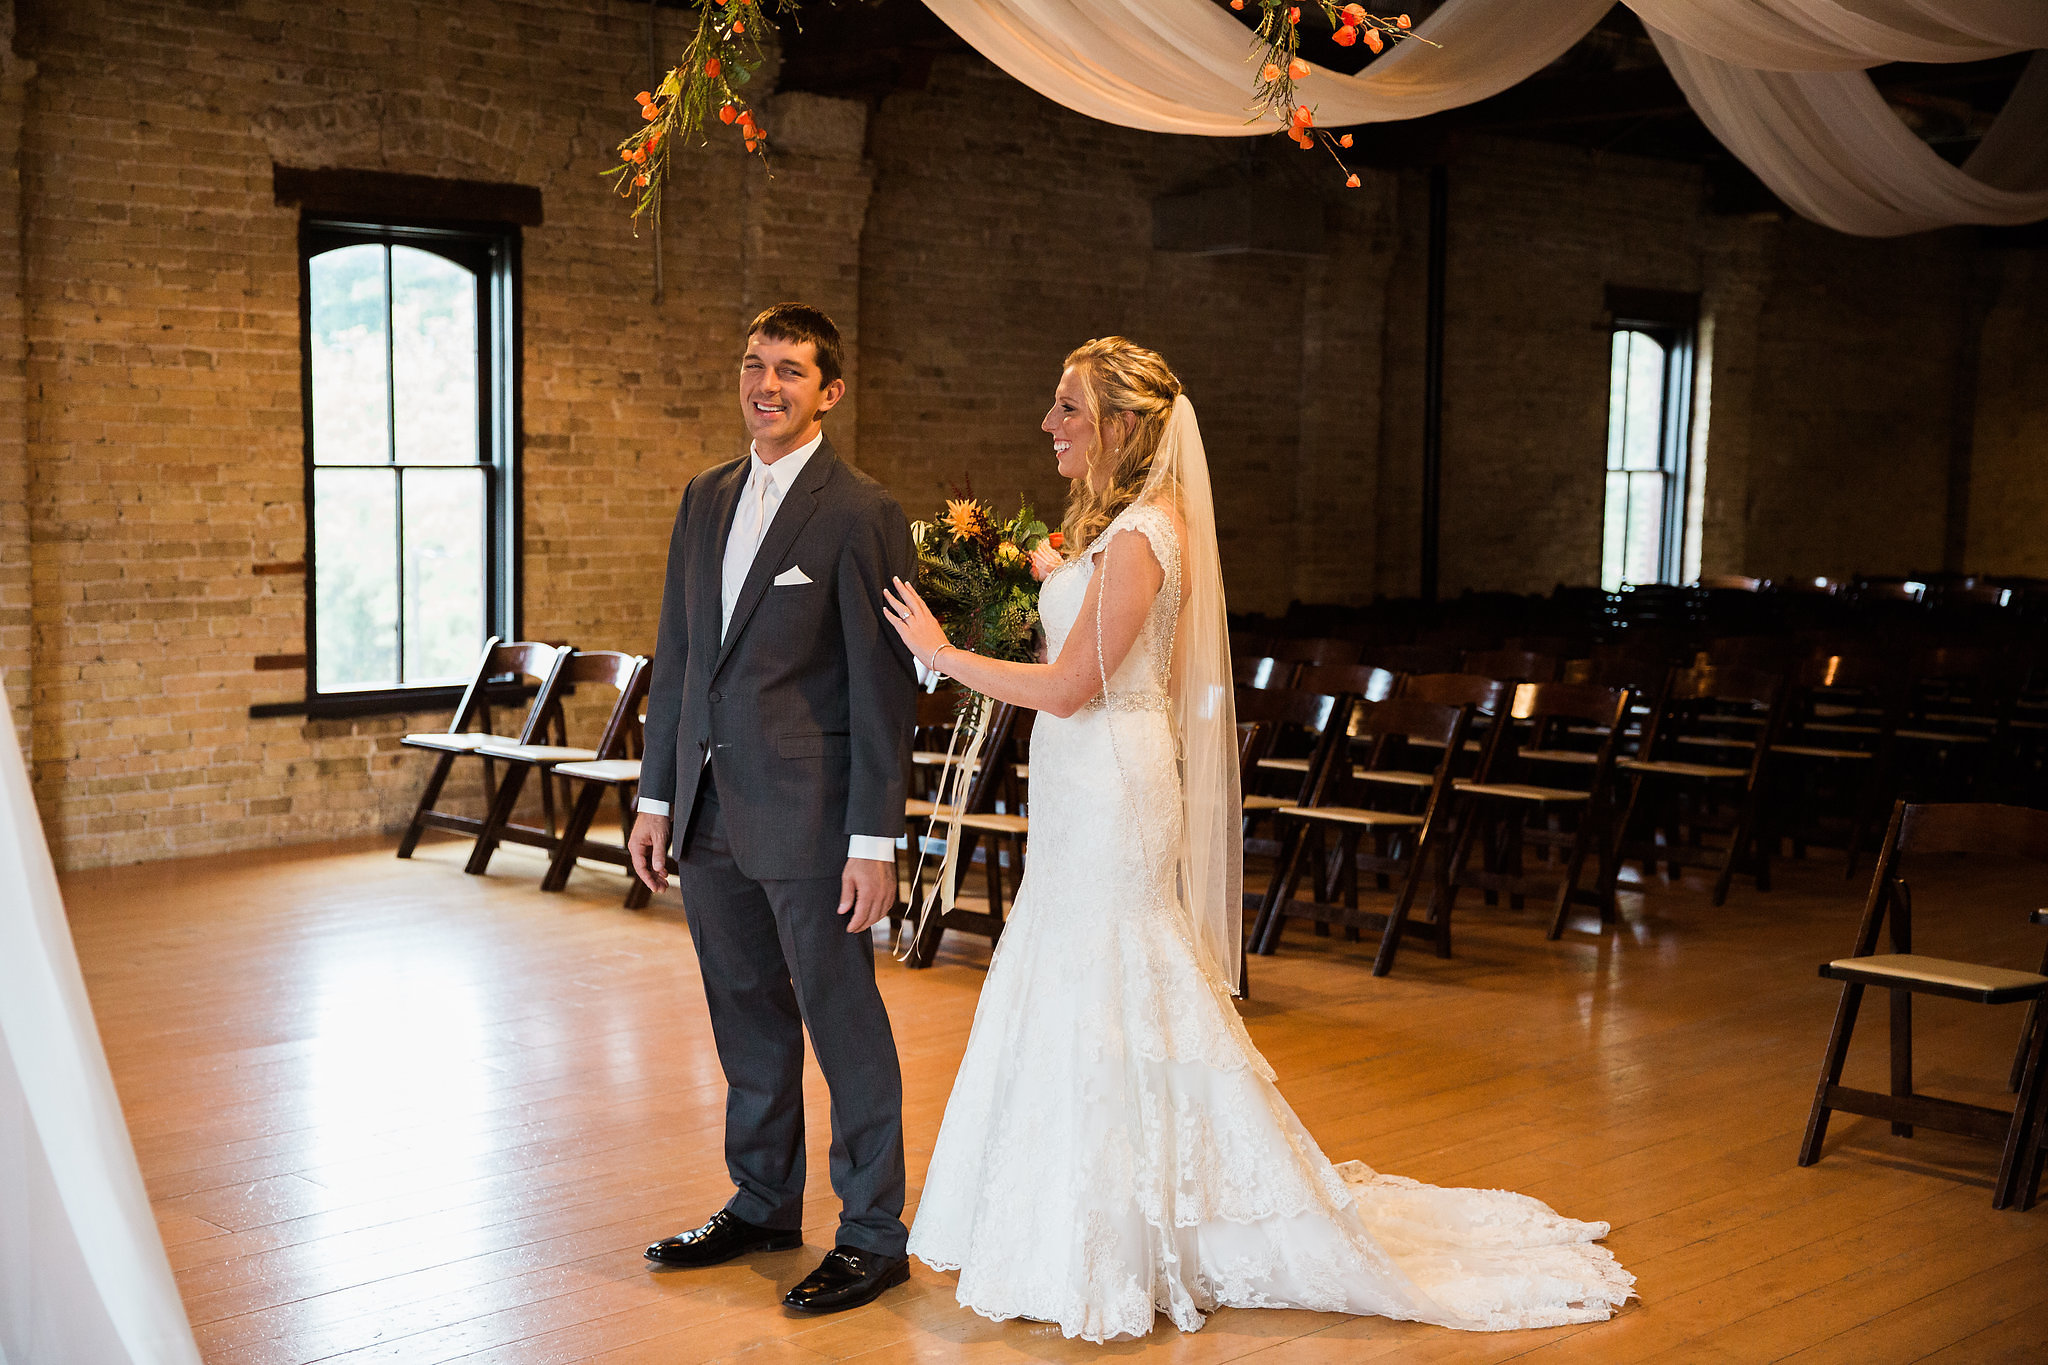 KellyKen_Wedding_107.jpg